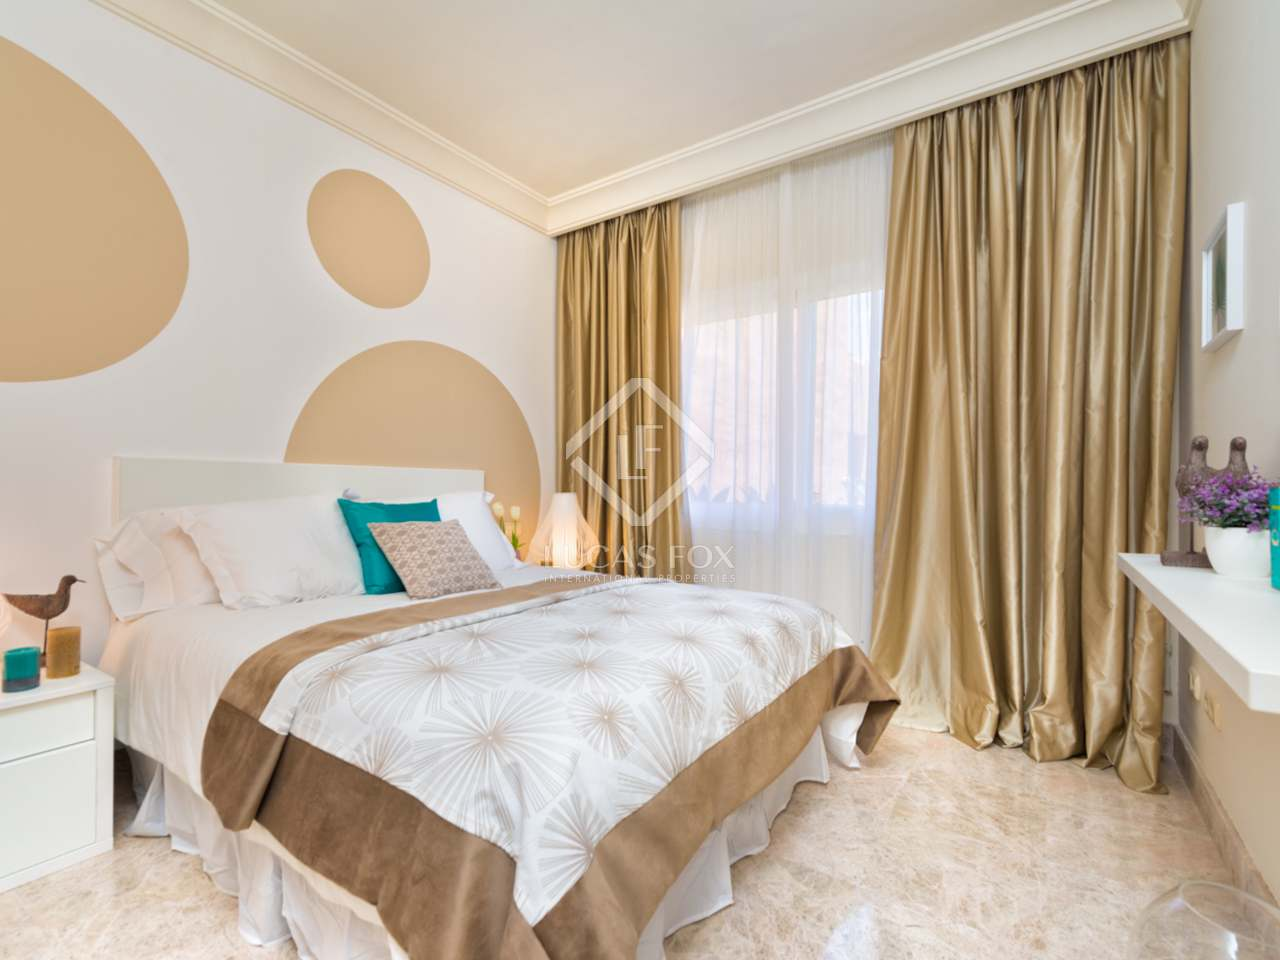 Luxury 3 Bedroom Apartments For Sale Golf Valley Marbella